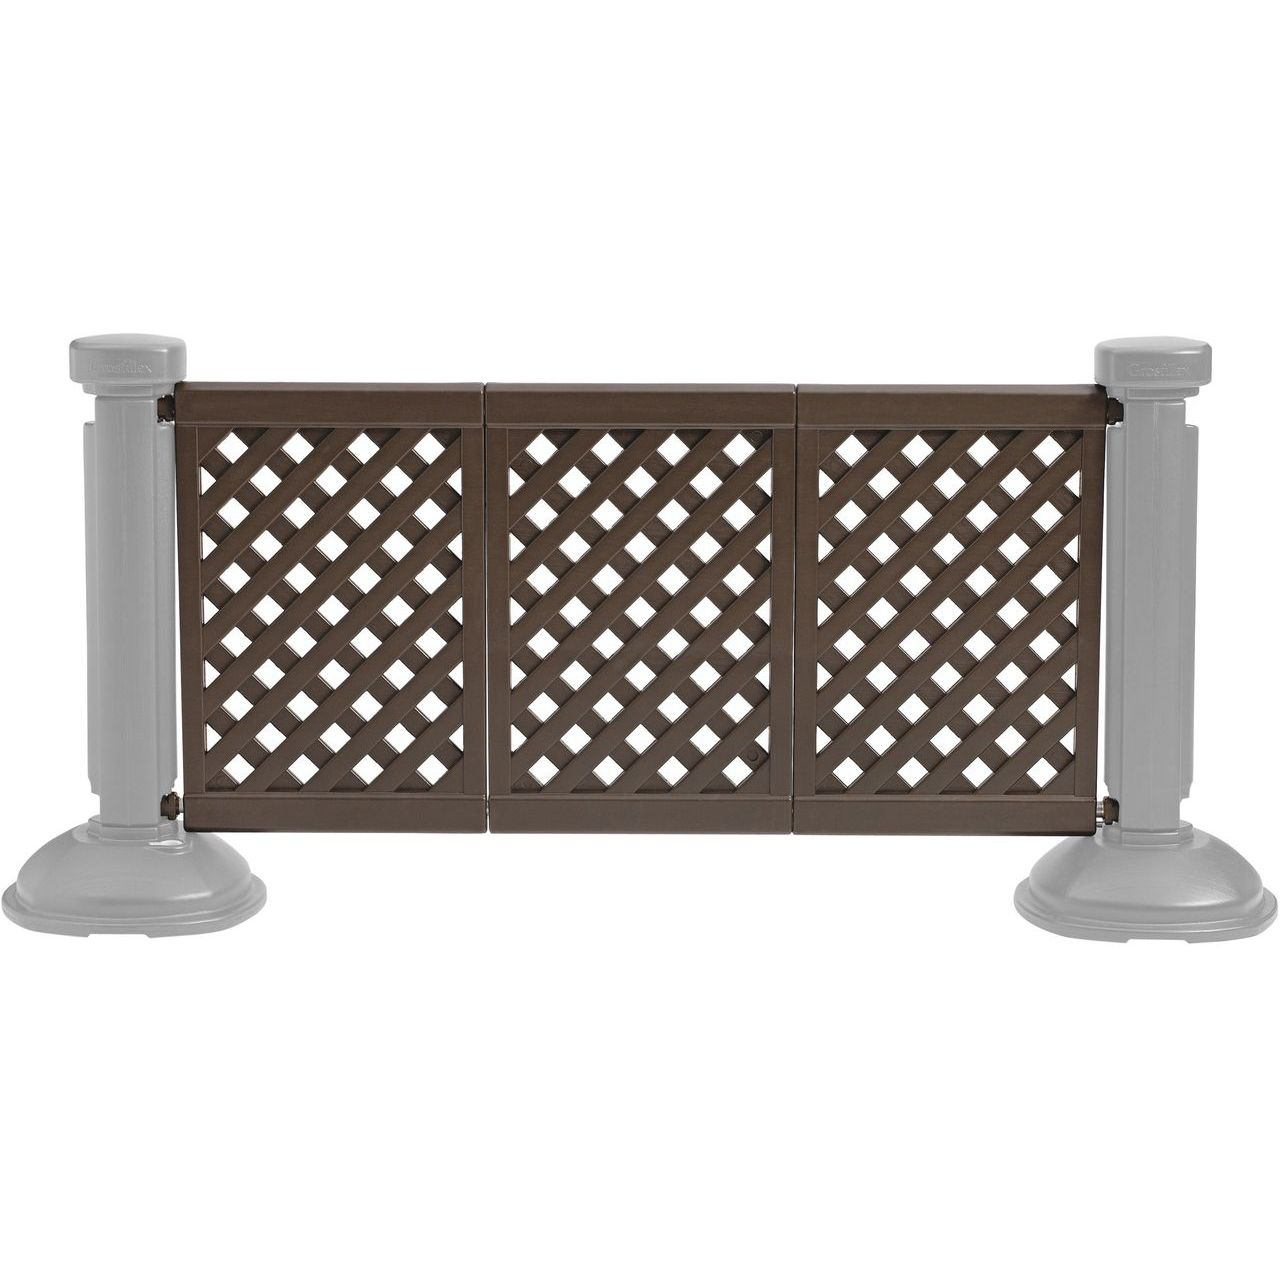 Grosfillex 3-Panel Section of Portable Fencing in Brown